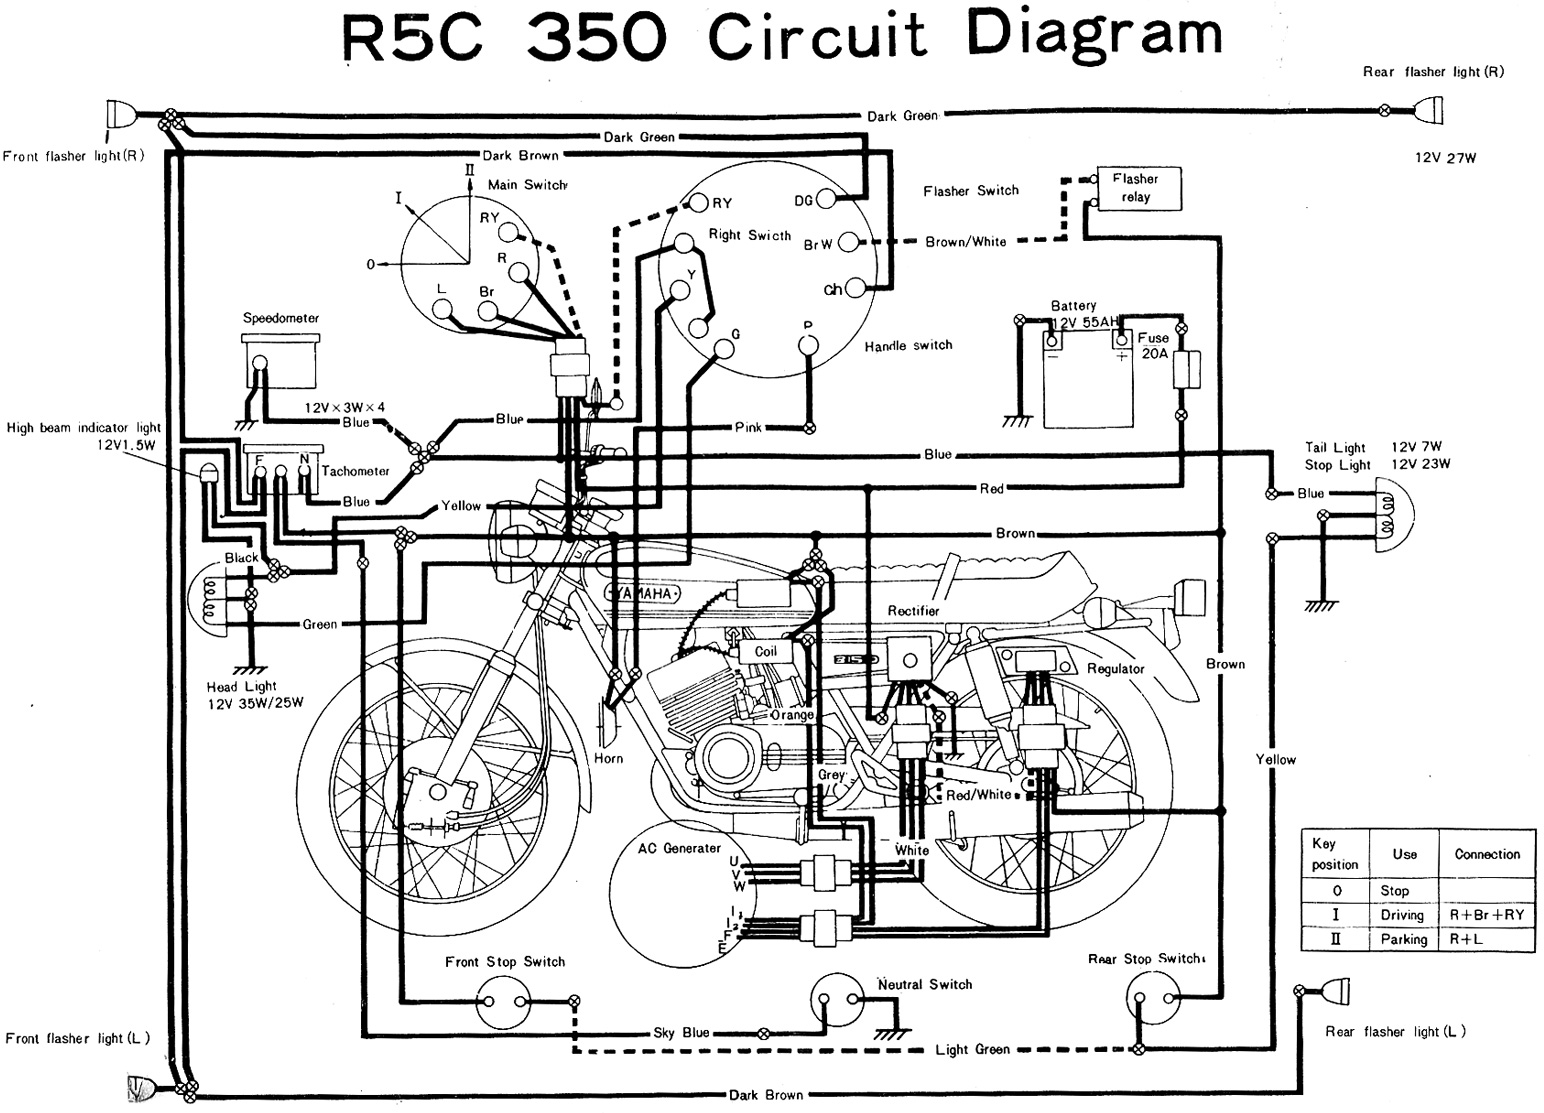 Yamaha RD350 R5C Wiring Diagram motorcycle wiring diagrams evan fell motorcycle worksevan fell Basic Motorcycle Diagram at panicattacktreatment.co